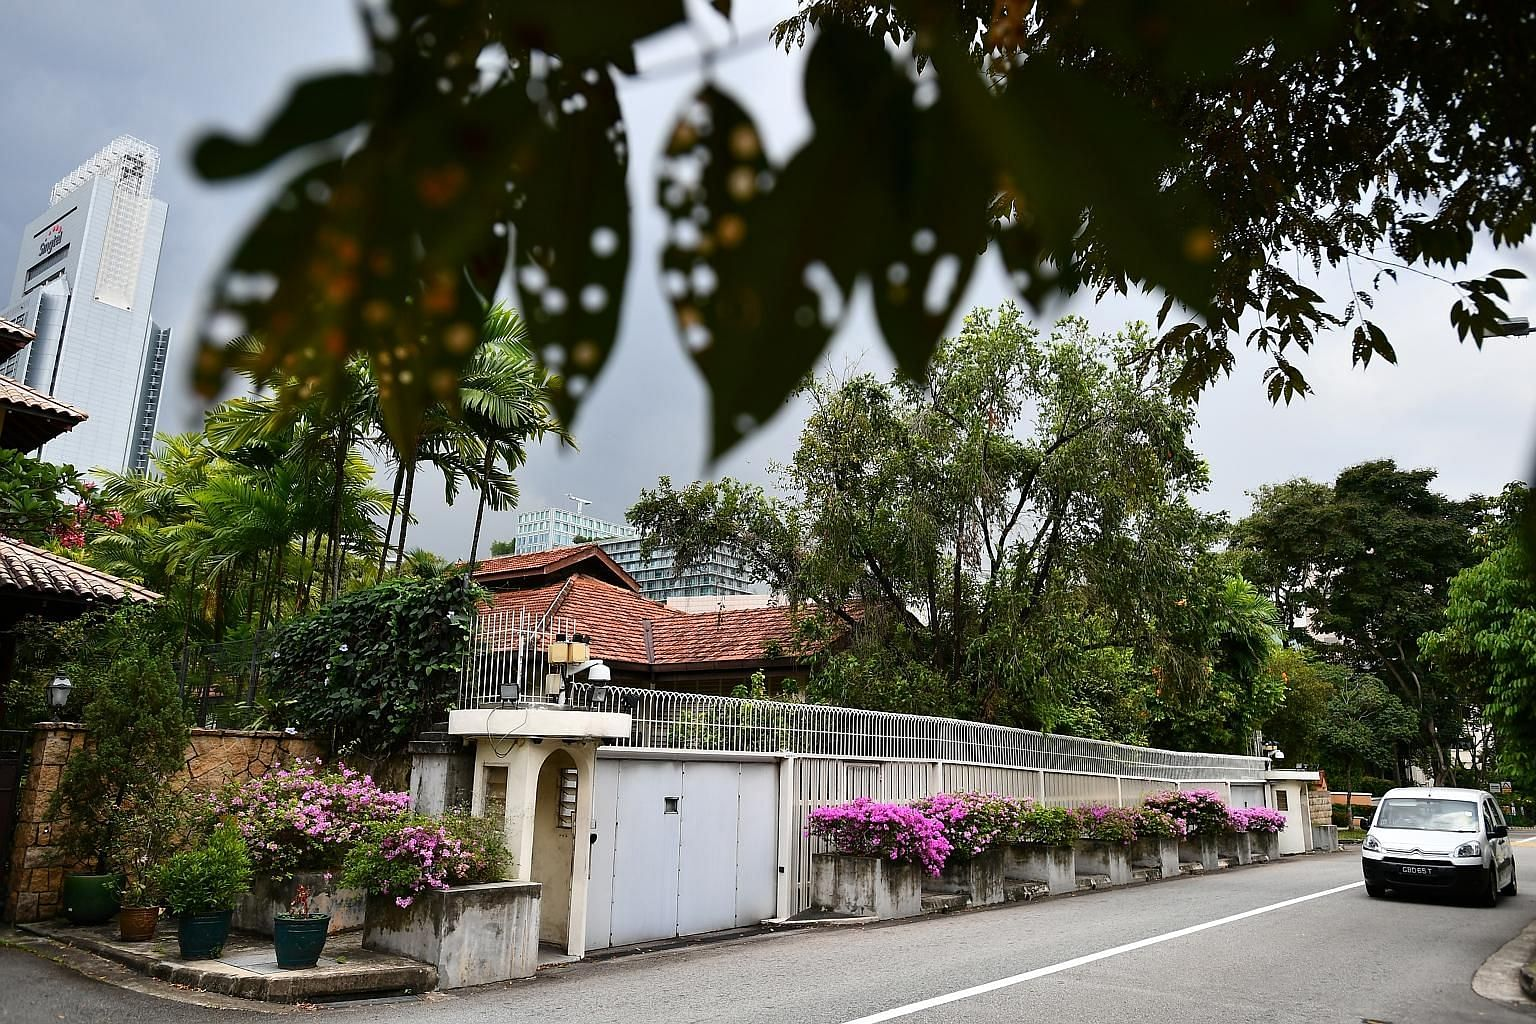 Mr Lee Kuan Yew's home at 38 Oxley Road. A clause on the demolition of the house, drafted for previous versions of the will but subsequently deleted, came to be reinstated in the last will.